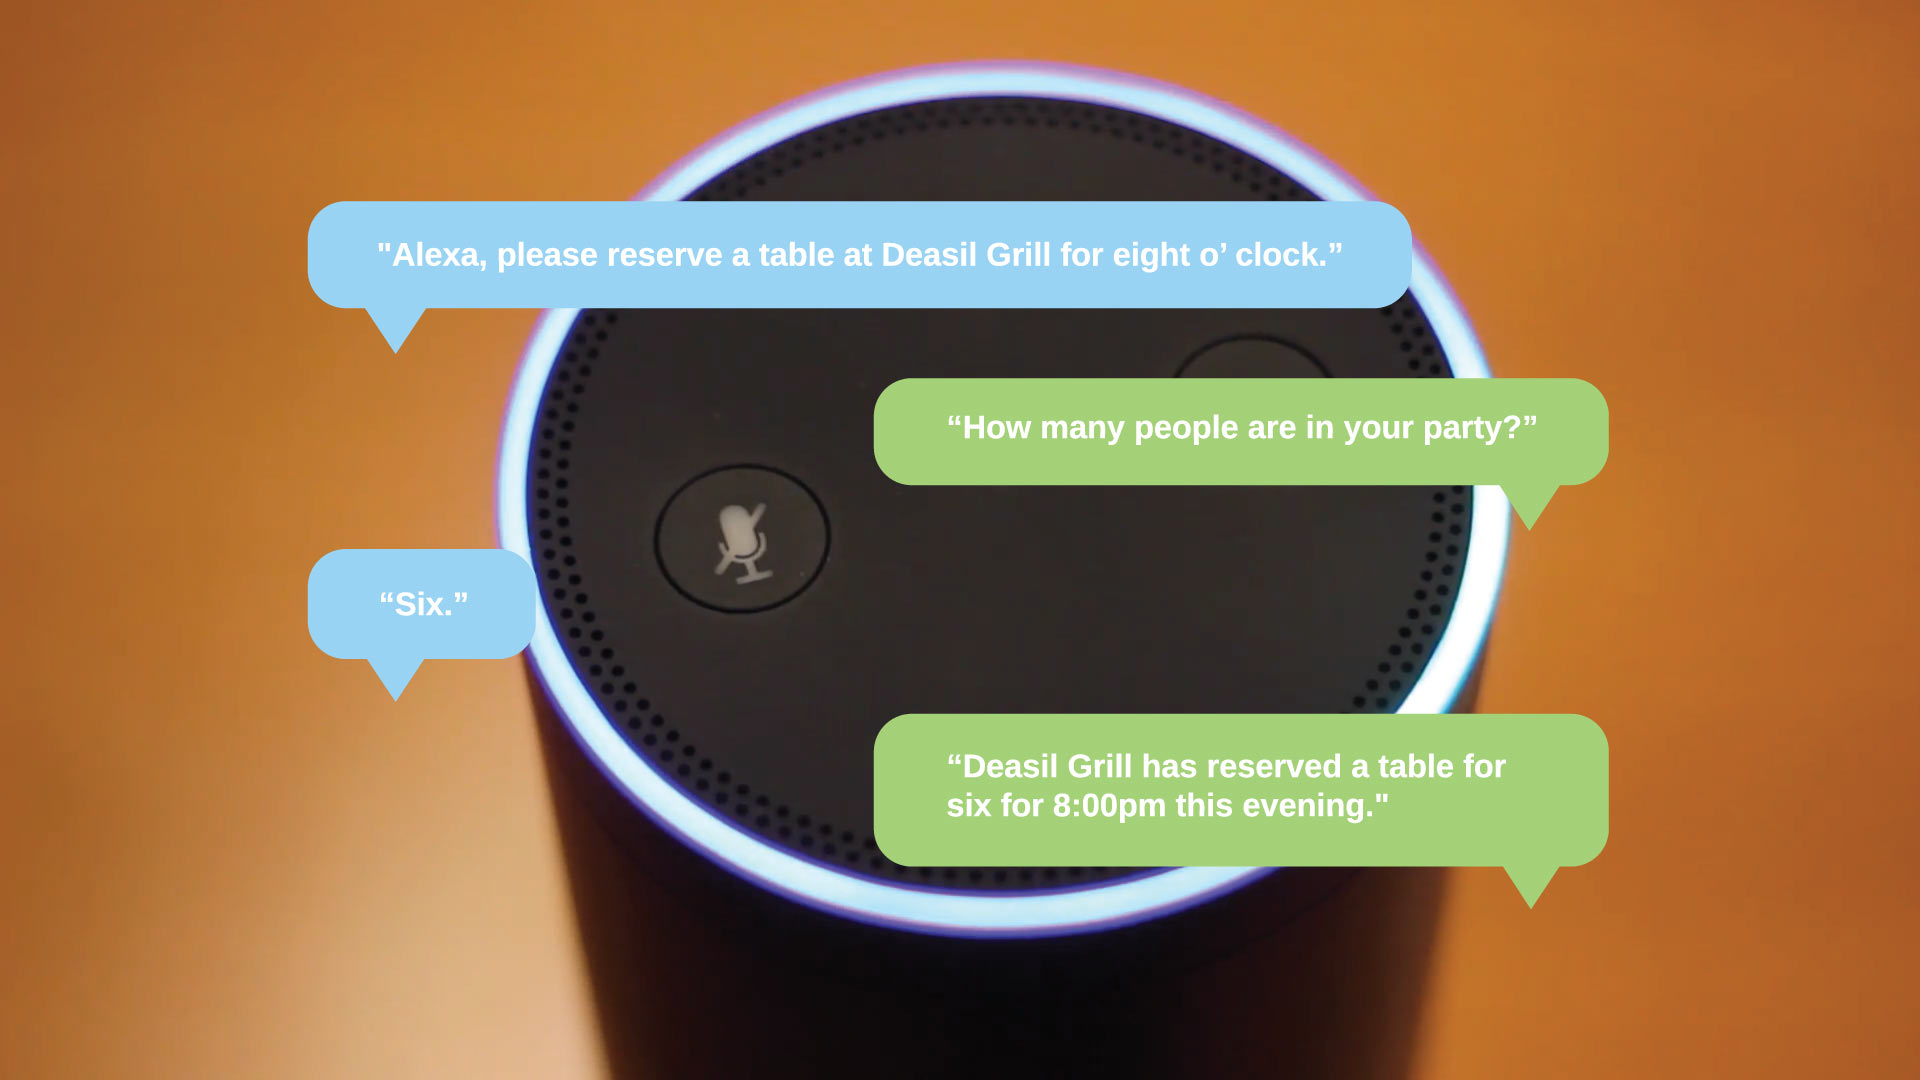 Voice Services - Conversation with Alexa